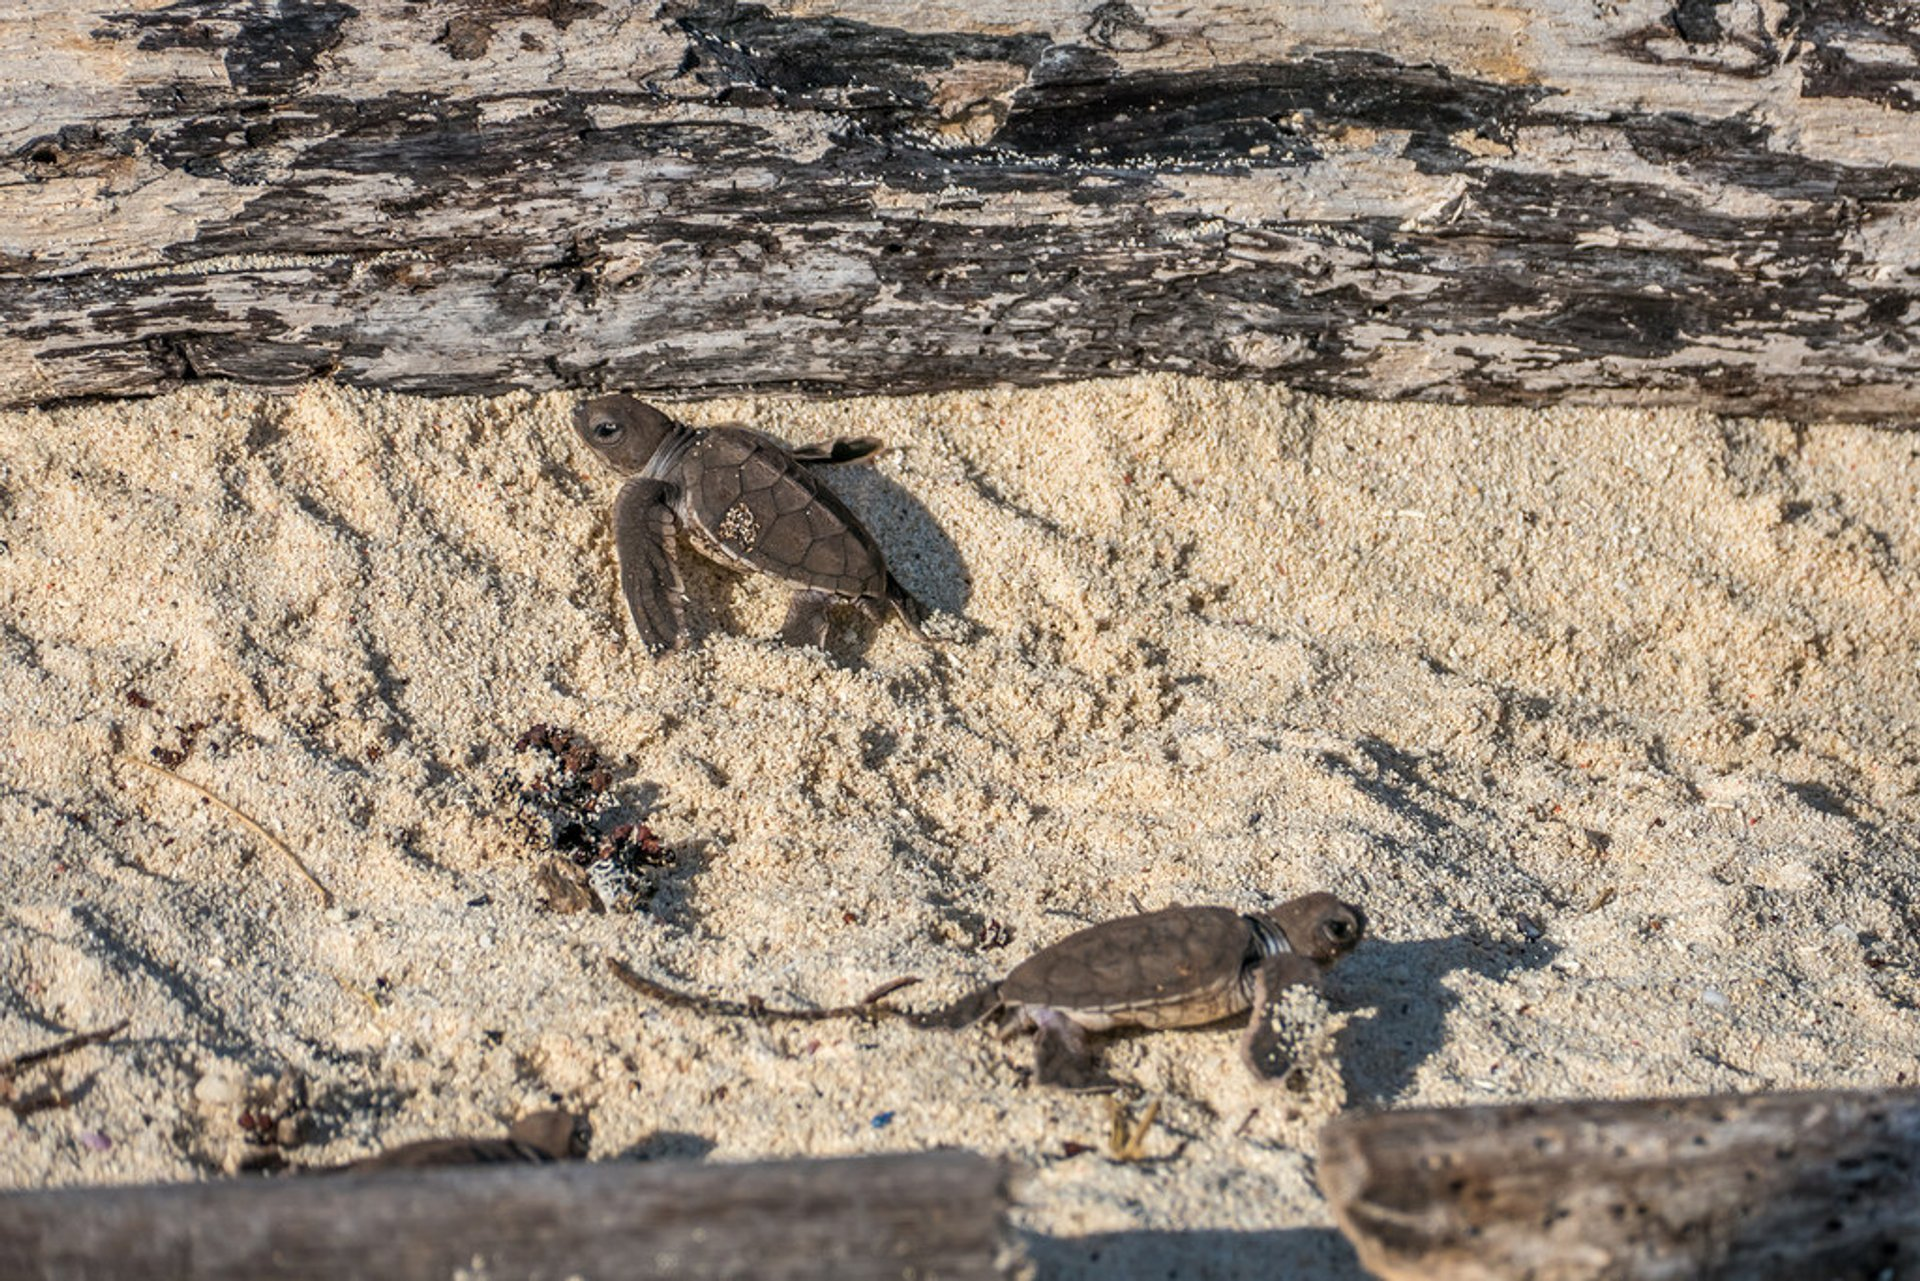 Best time to see Sea Turtle Hatchlings in Tanzania 2020